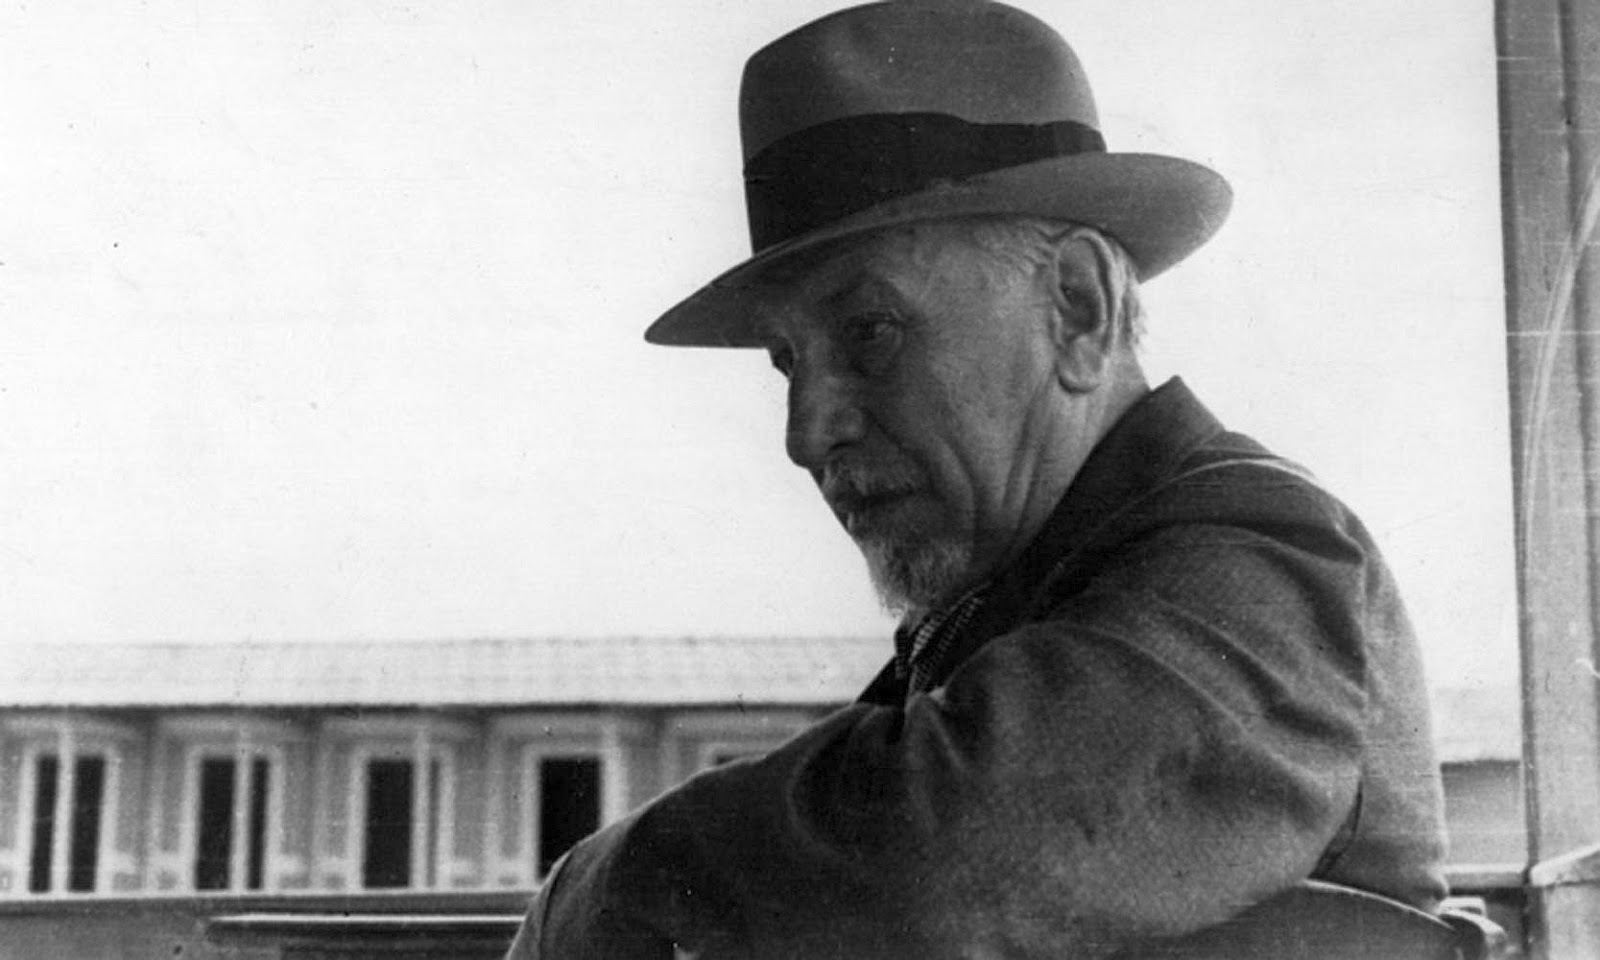 luigi pirandello Biography of italian playwright luigi pirandello, plus summaries of some of his plays and links to all of his works currently in print.